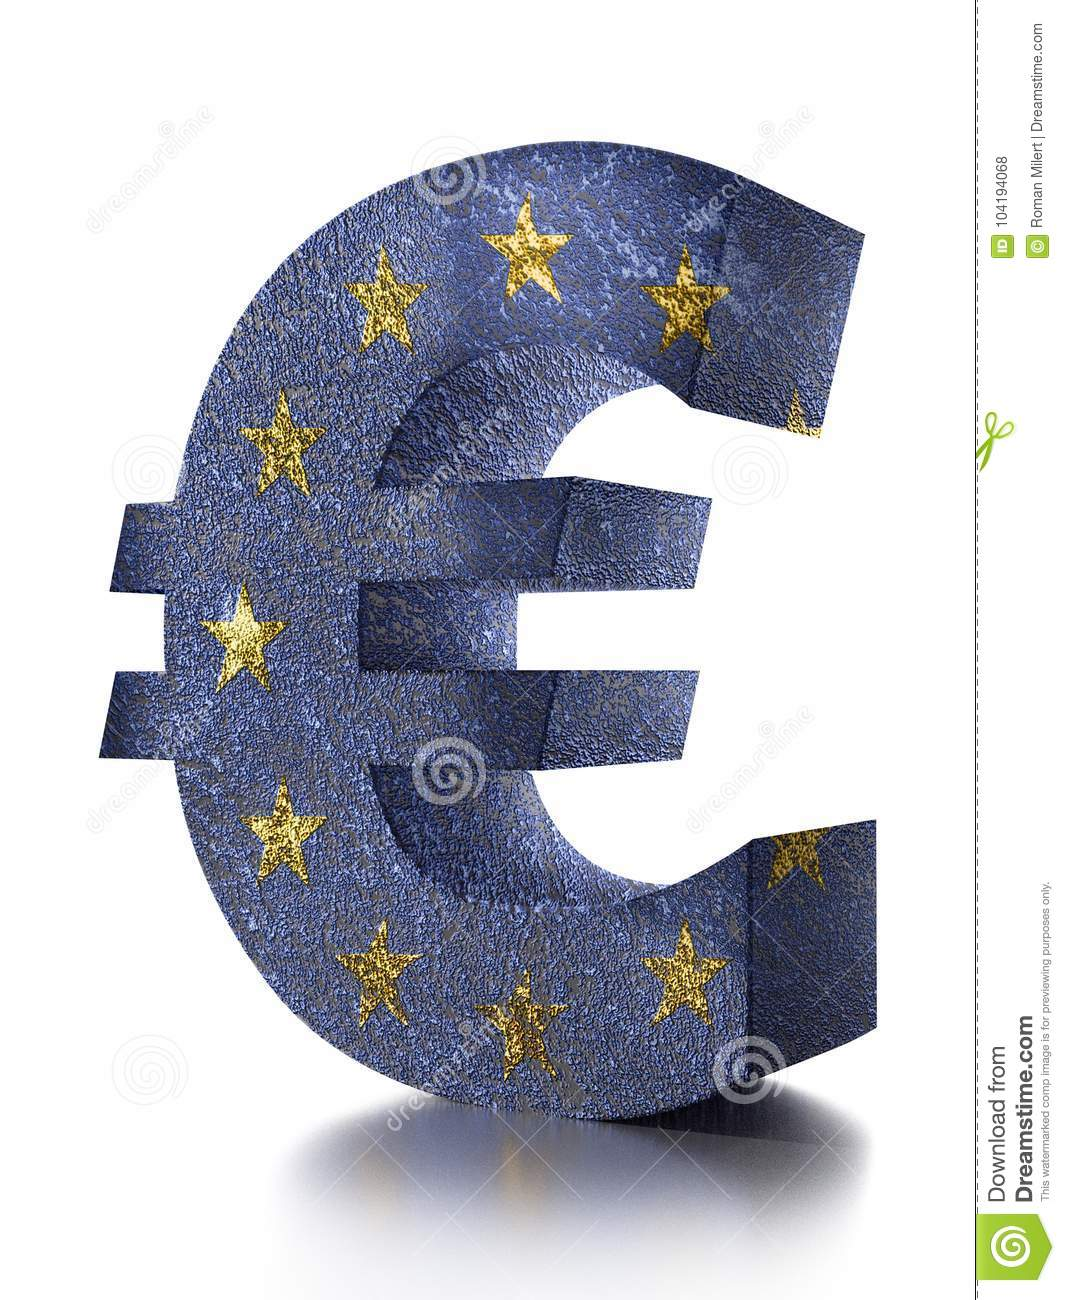 3d euro currency symbol stock illustration illustration of 3d euro currency symbol biocorpaavc Images